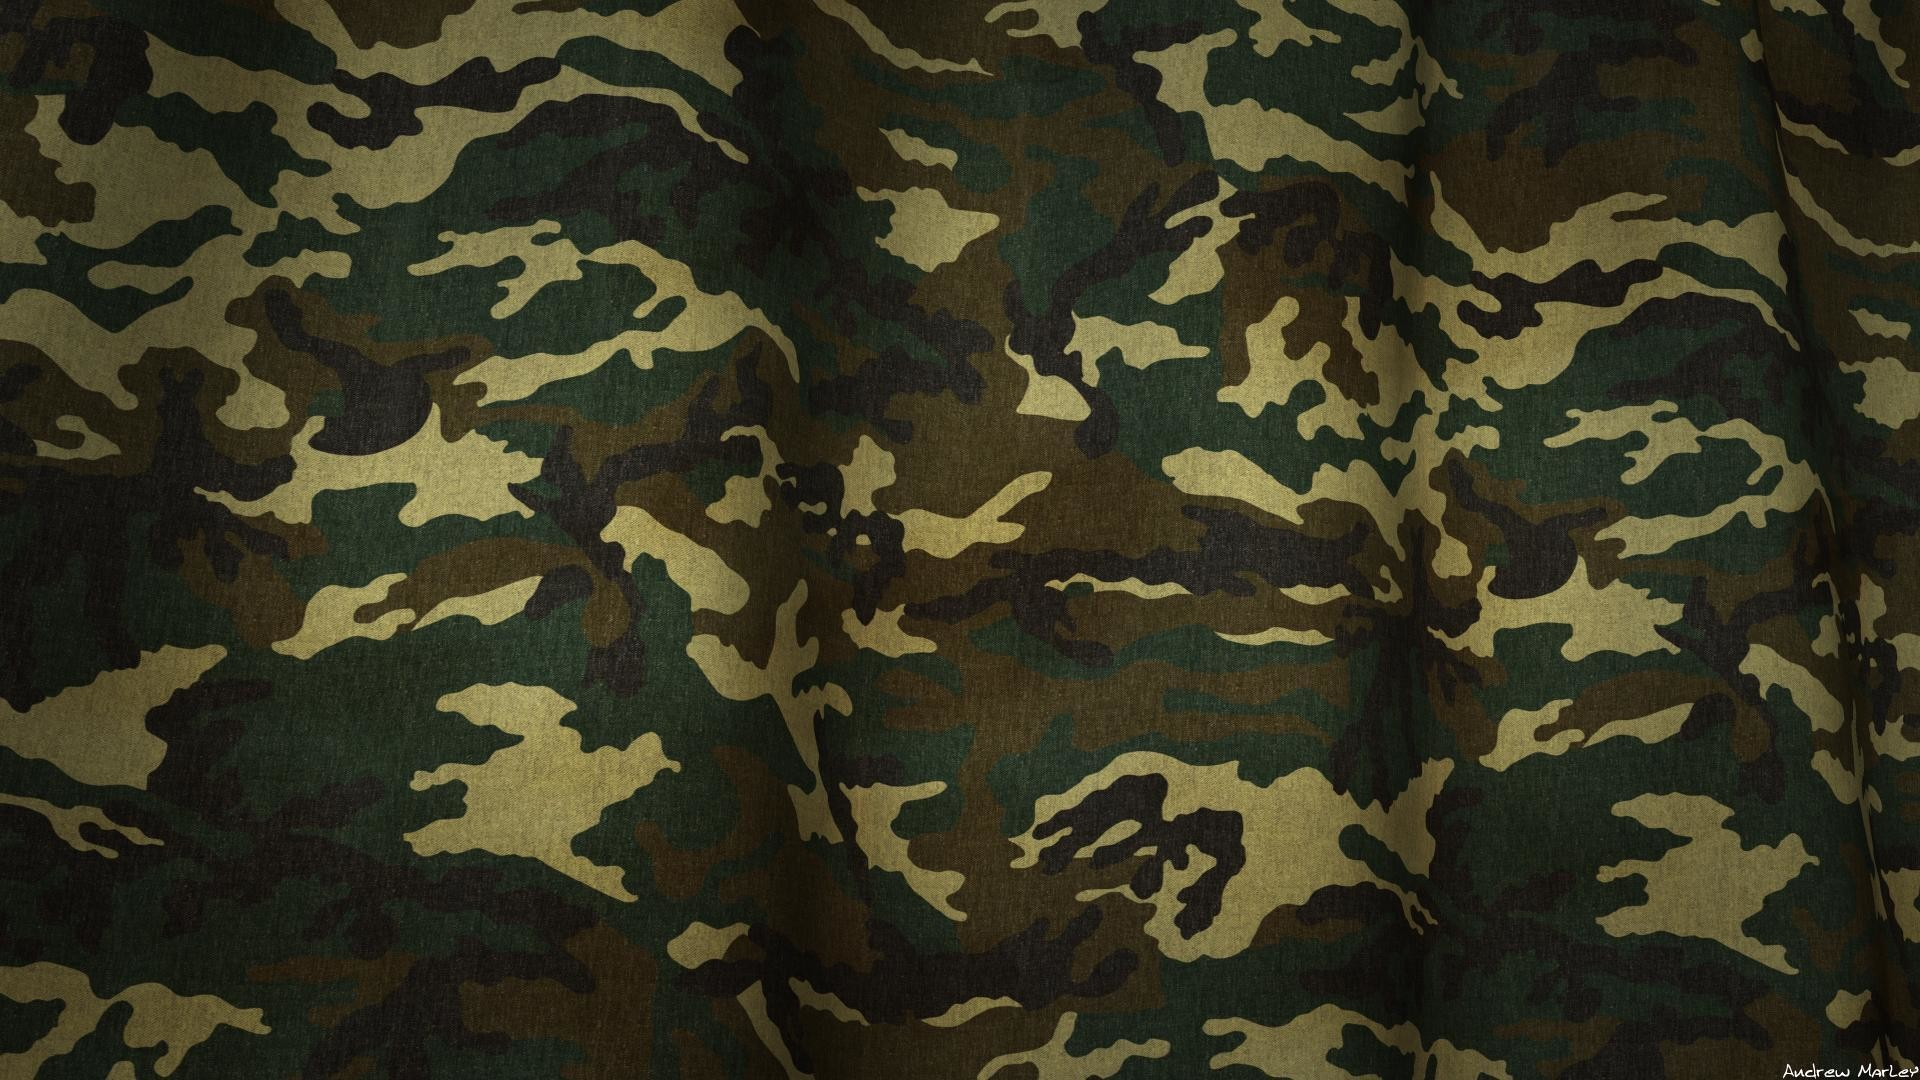 1920x1080 Camo Hd Backgrounds 3 - Image